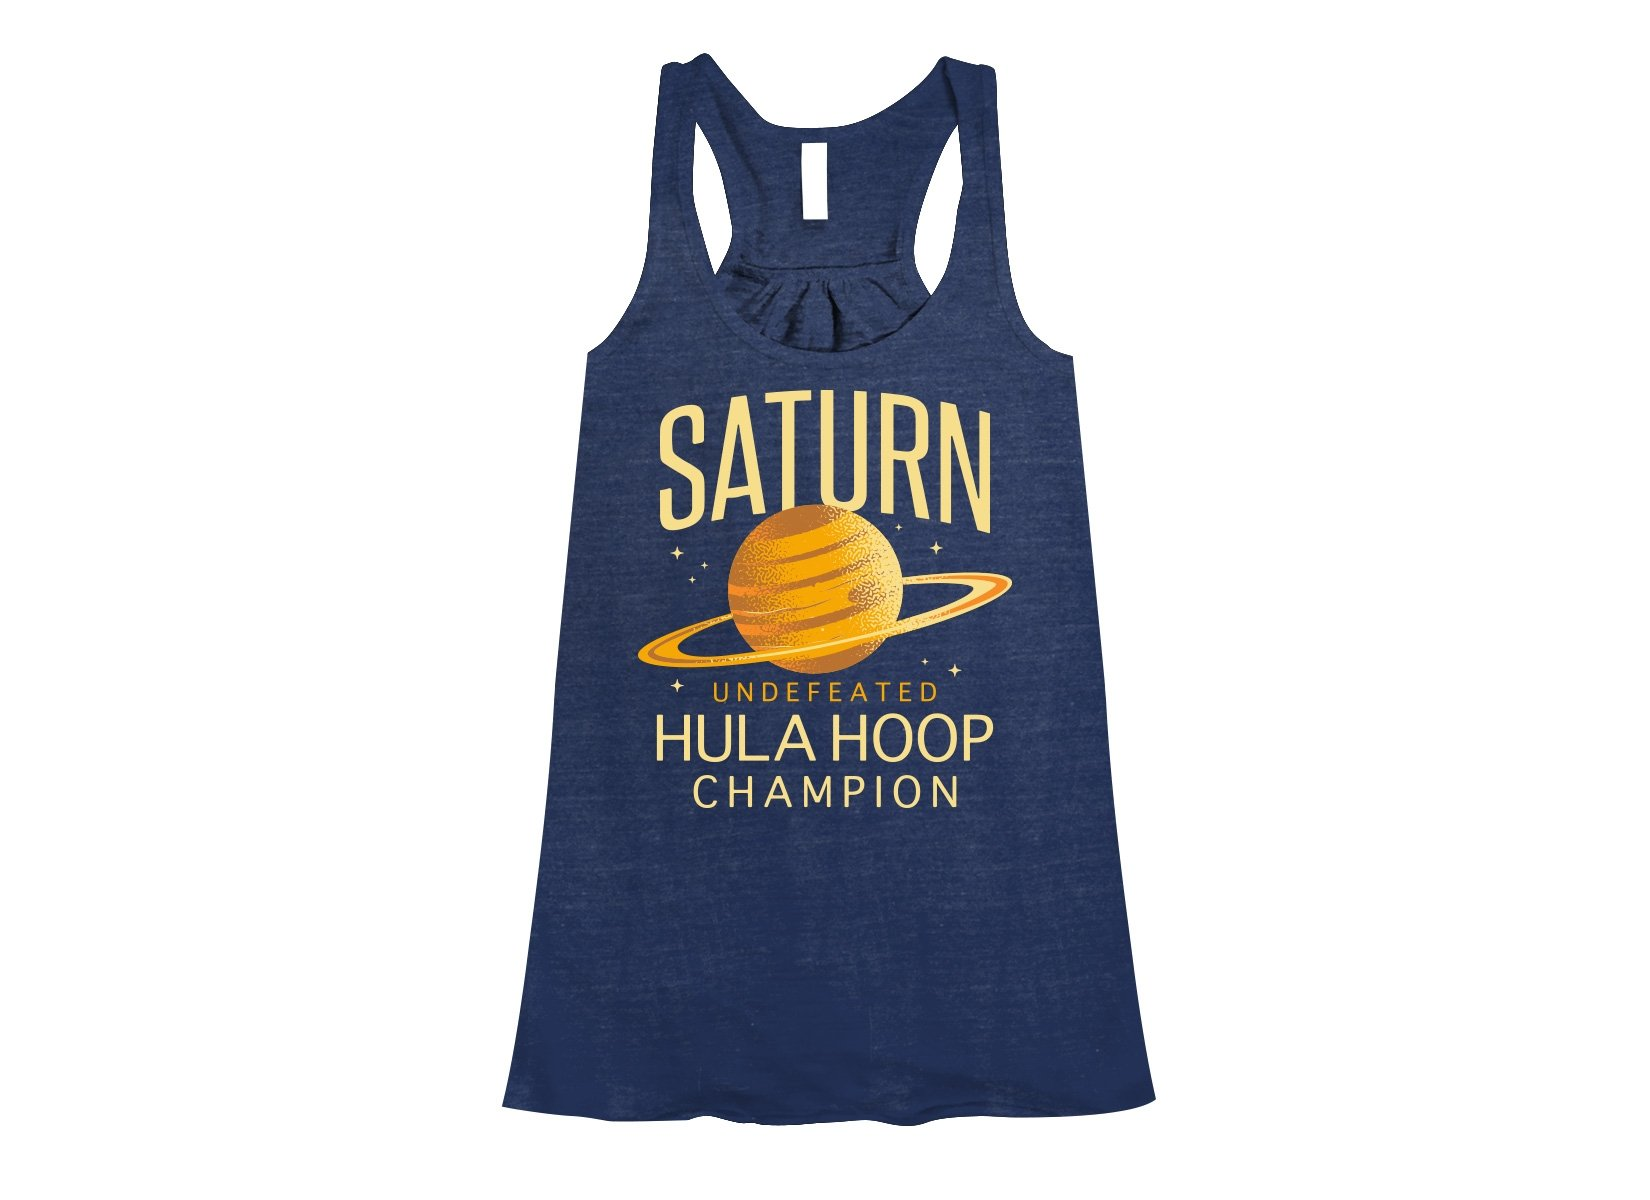 Undefeated Hula Hoop Champion on Womens Tanks T-Shirt